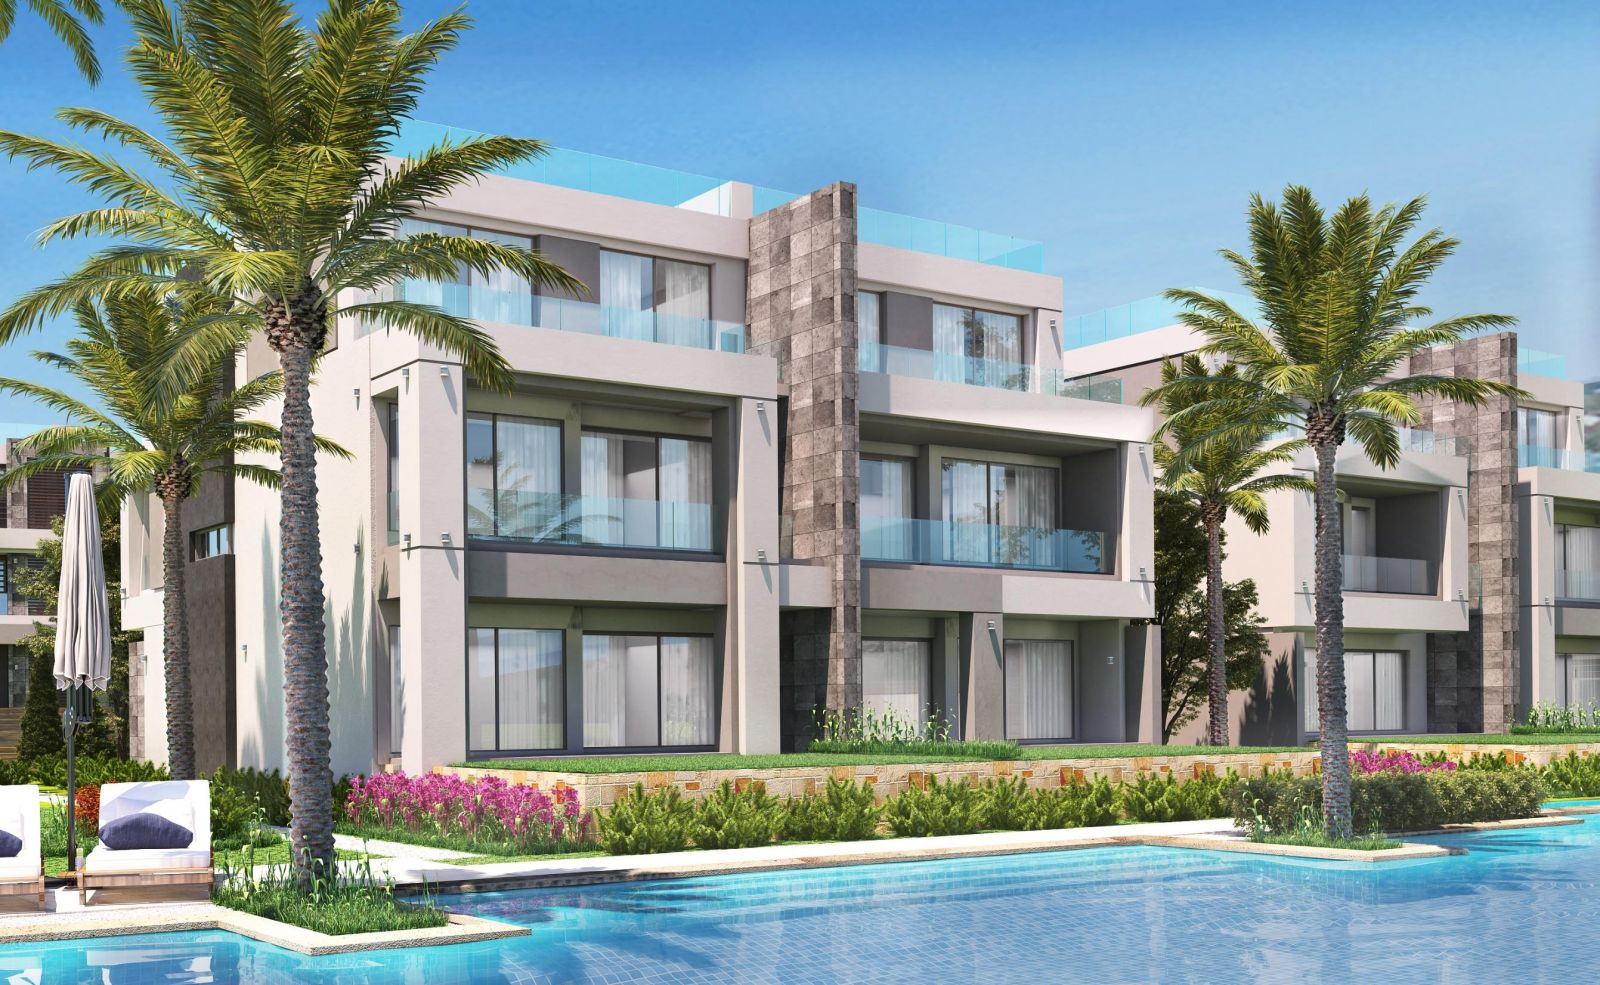 Town-house-for-sale-in-la-vista-ray-sokhna-resort